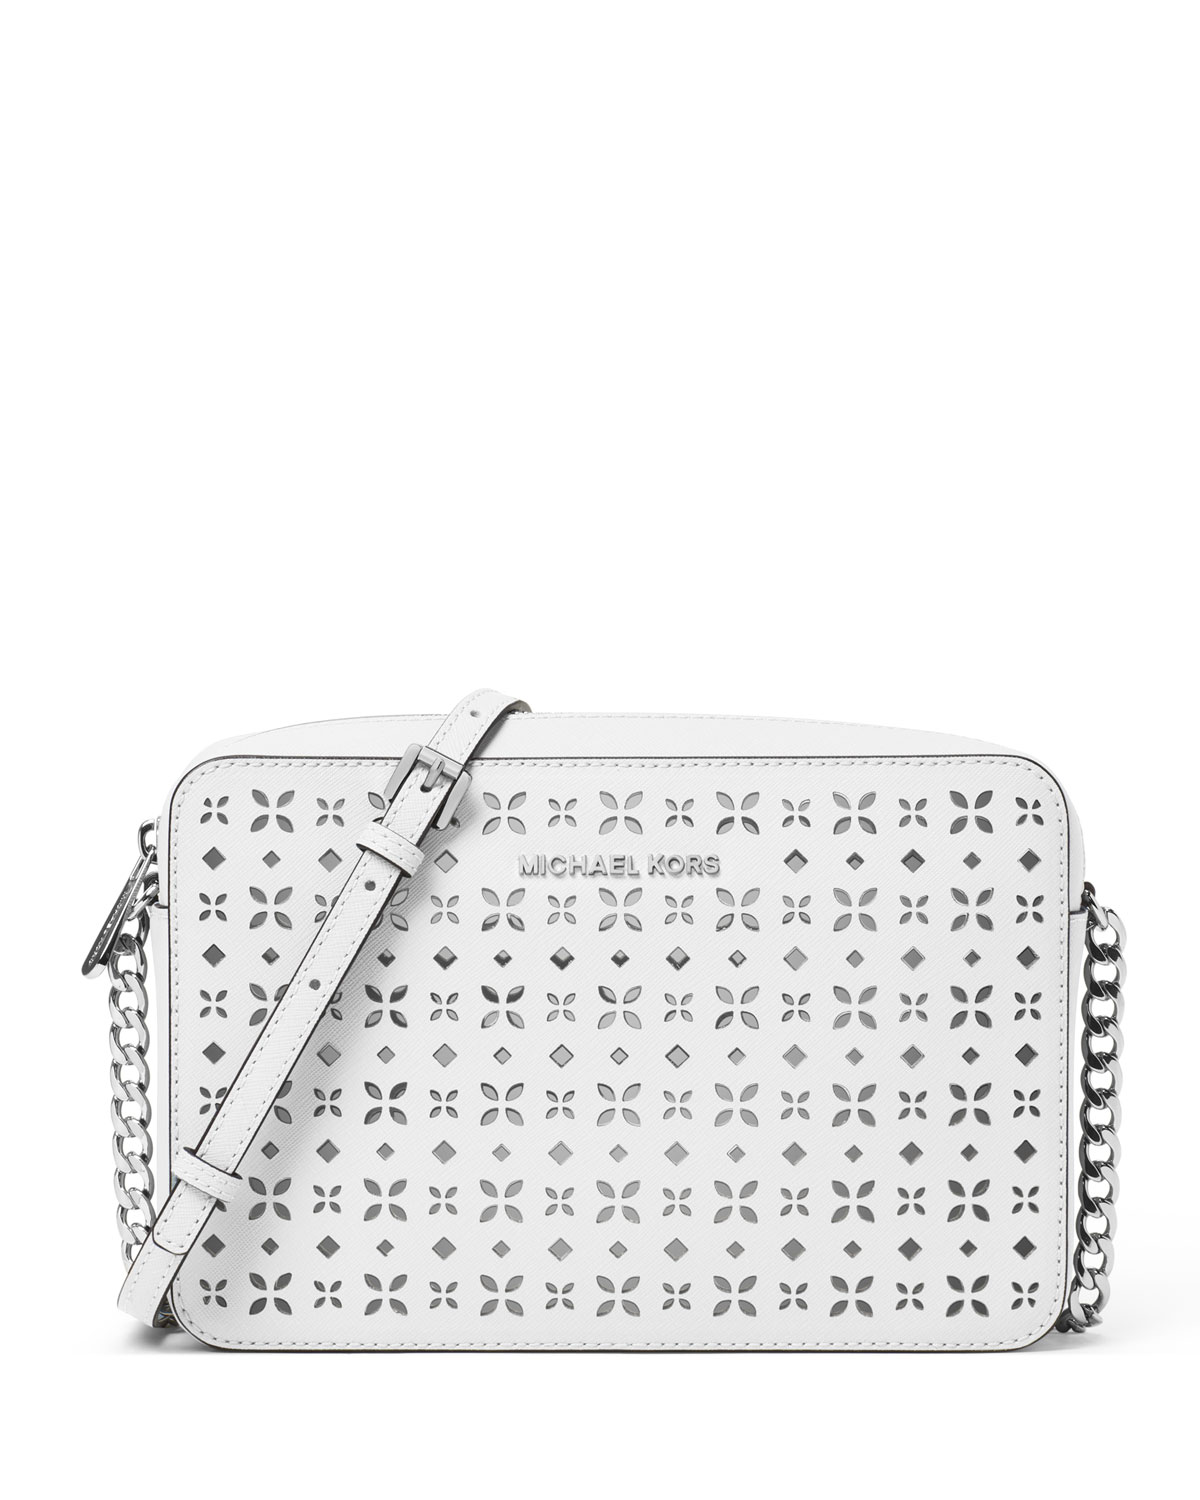 bbb015de3a3e MICHAEL Michael Kors Jet Set Laser-Cut Large Crossbody Bag, White/Silver